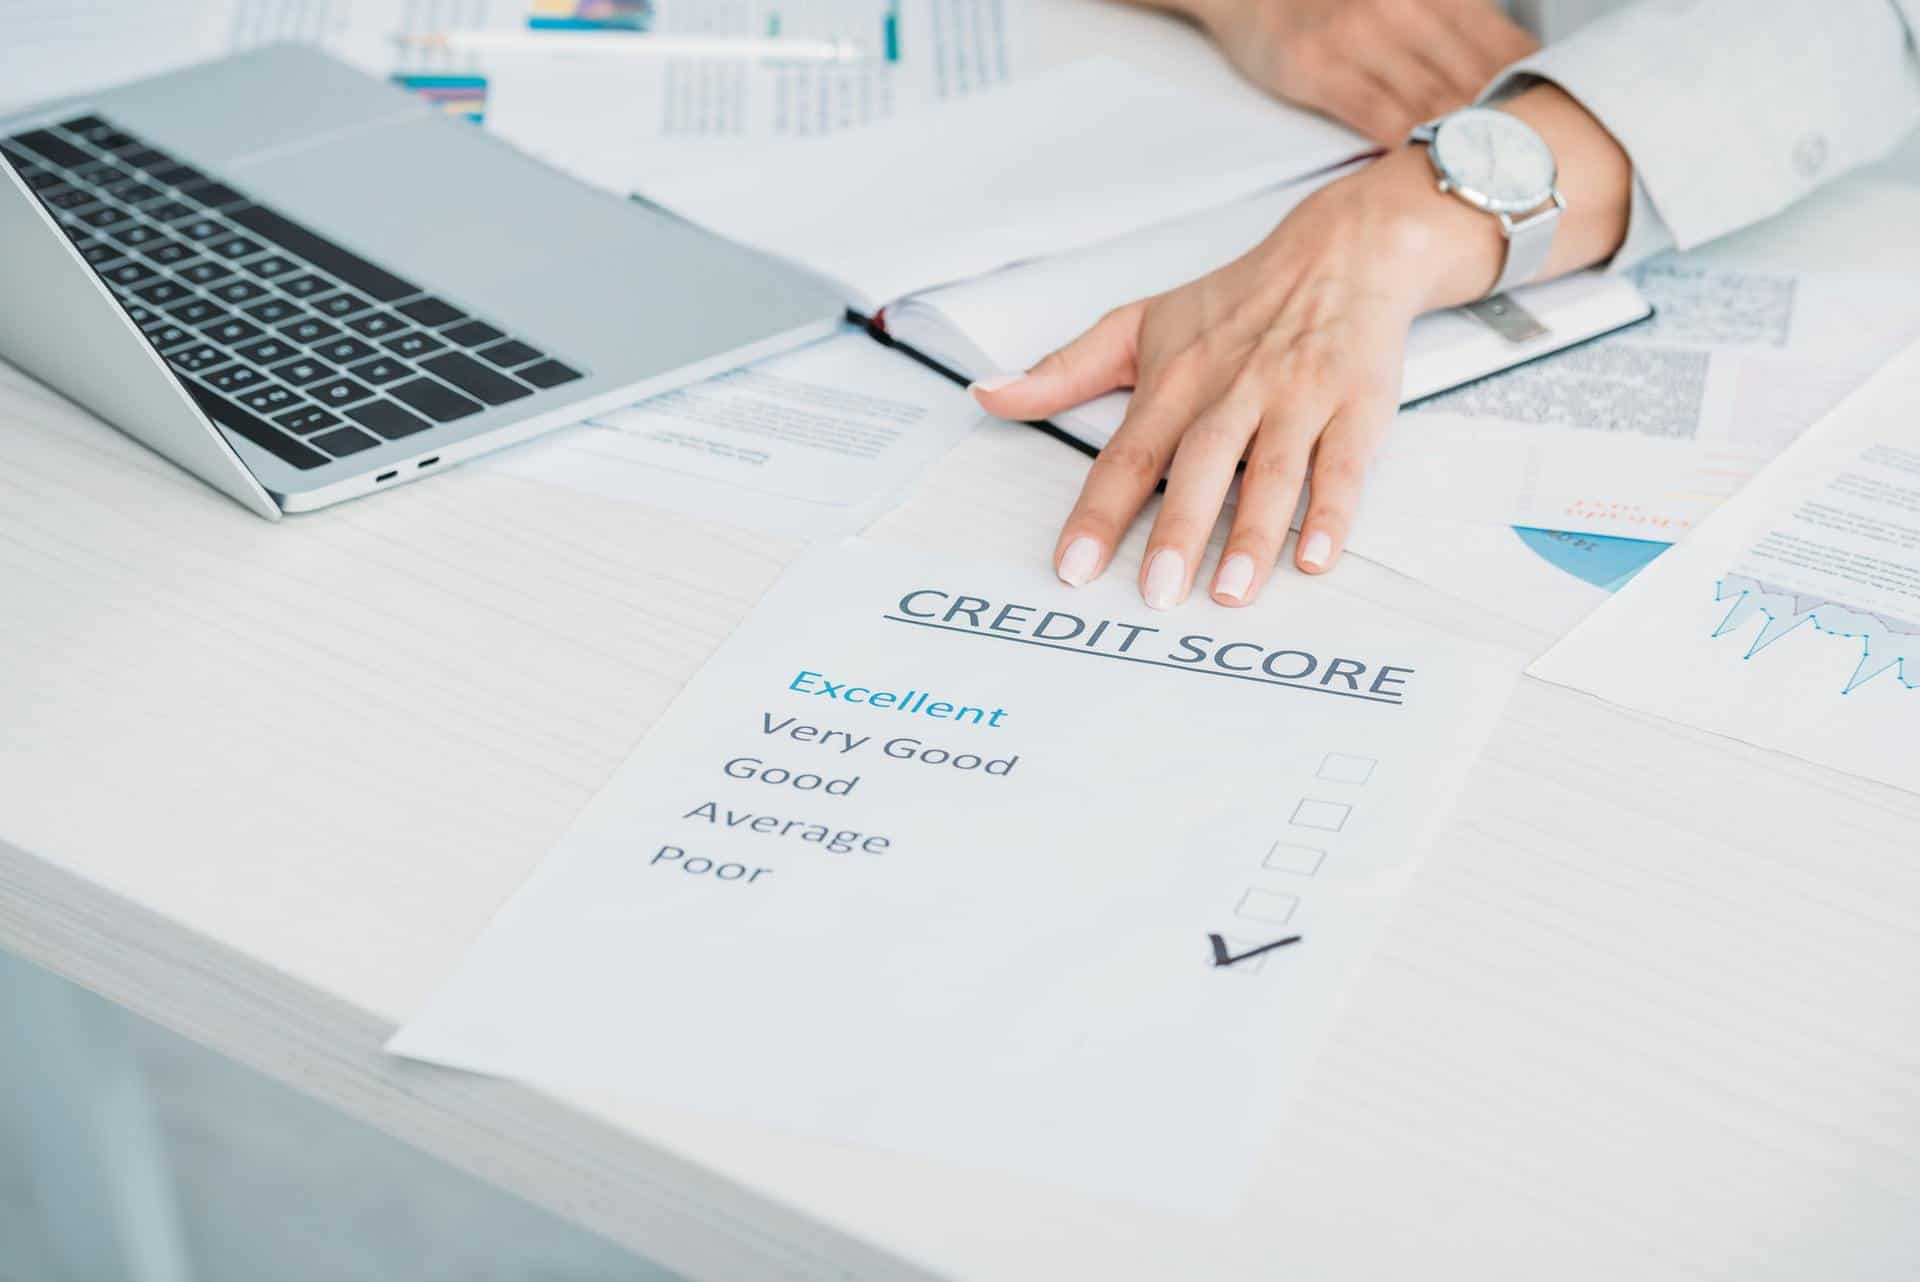 cropped view of woman showing bad credit score at office